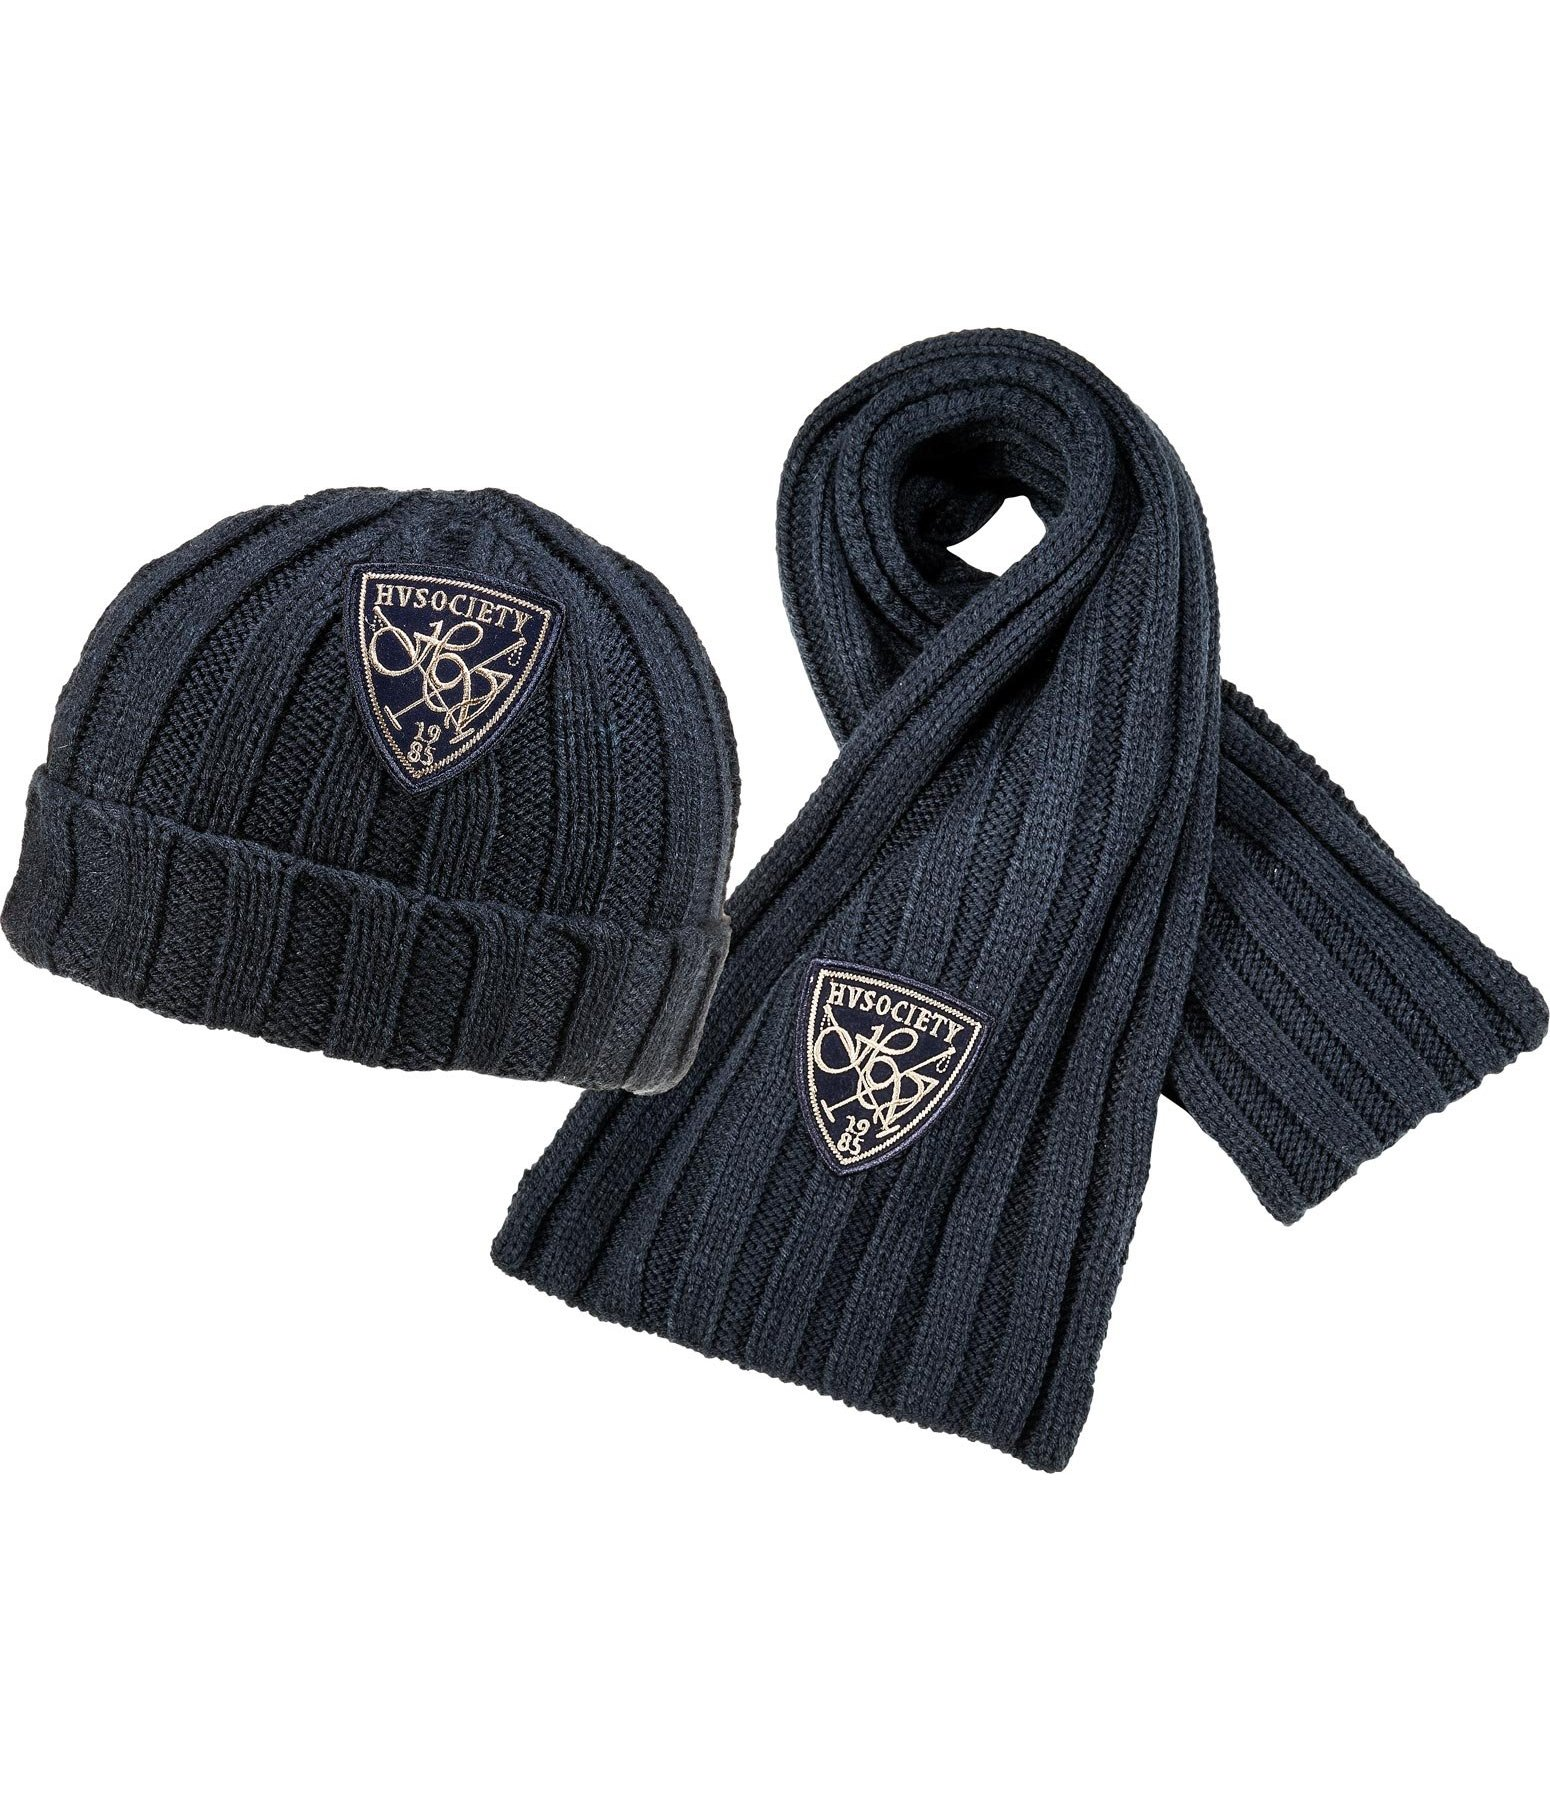 Rider · Women s Riding Wear · Accessories · Hats   Headbands. HV POLO Knit  Hat   Scarf Set - 750416--NV 6a91c7b17109